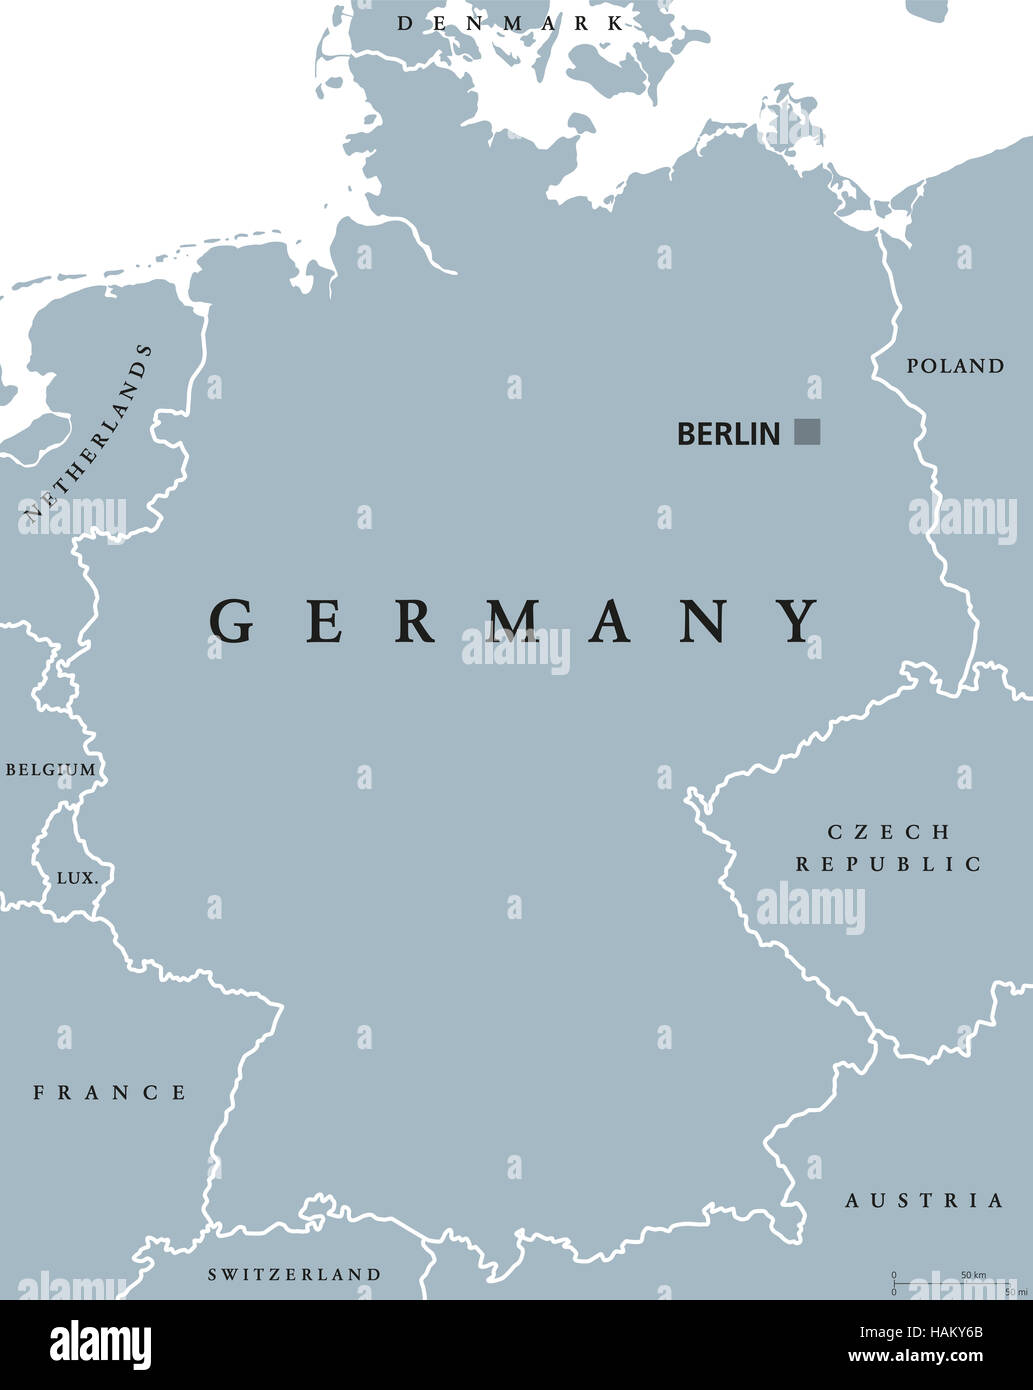 germany political map with capital berlin national borders and neighbor countries gray illustration with english labeling